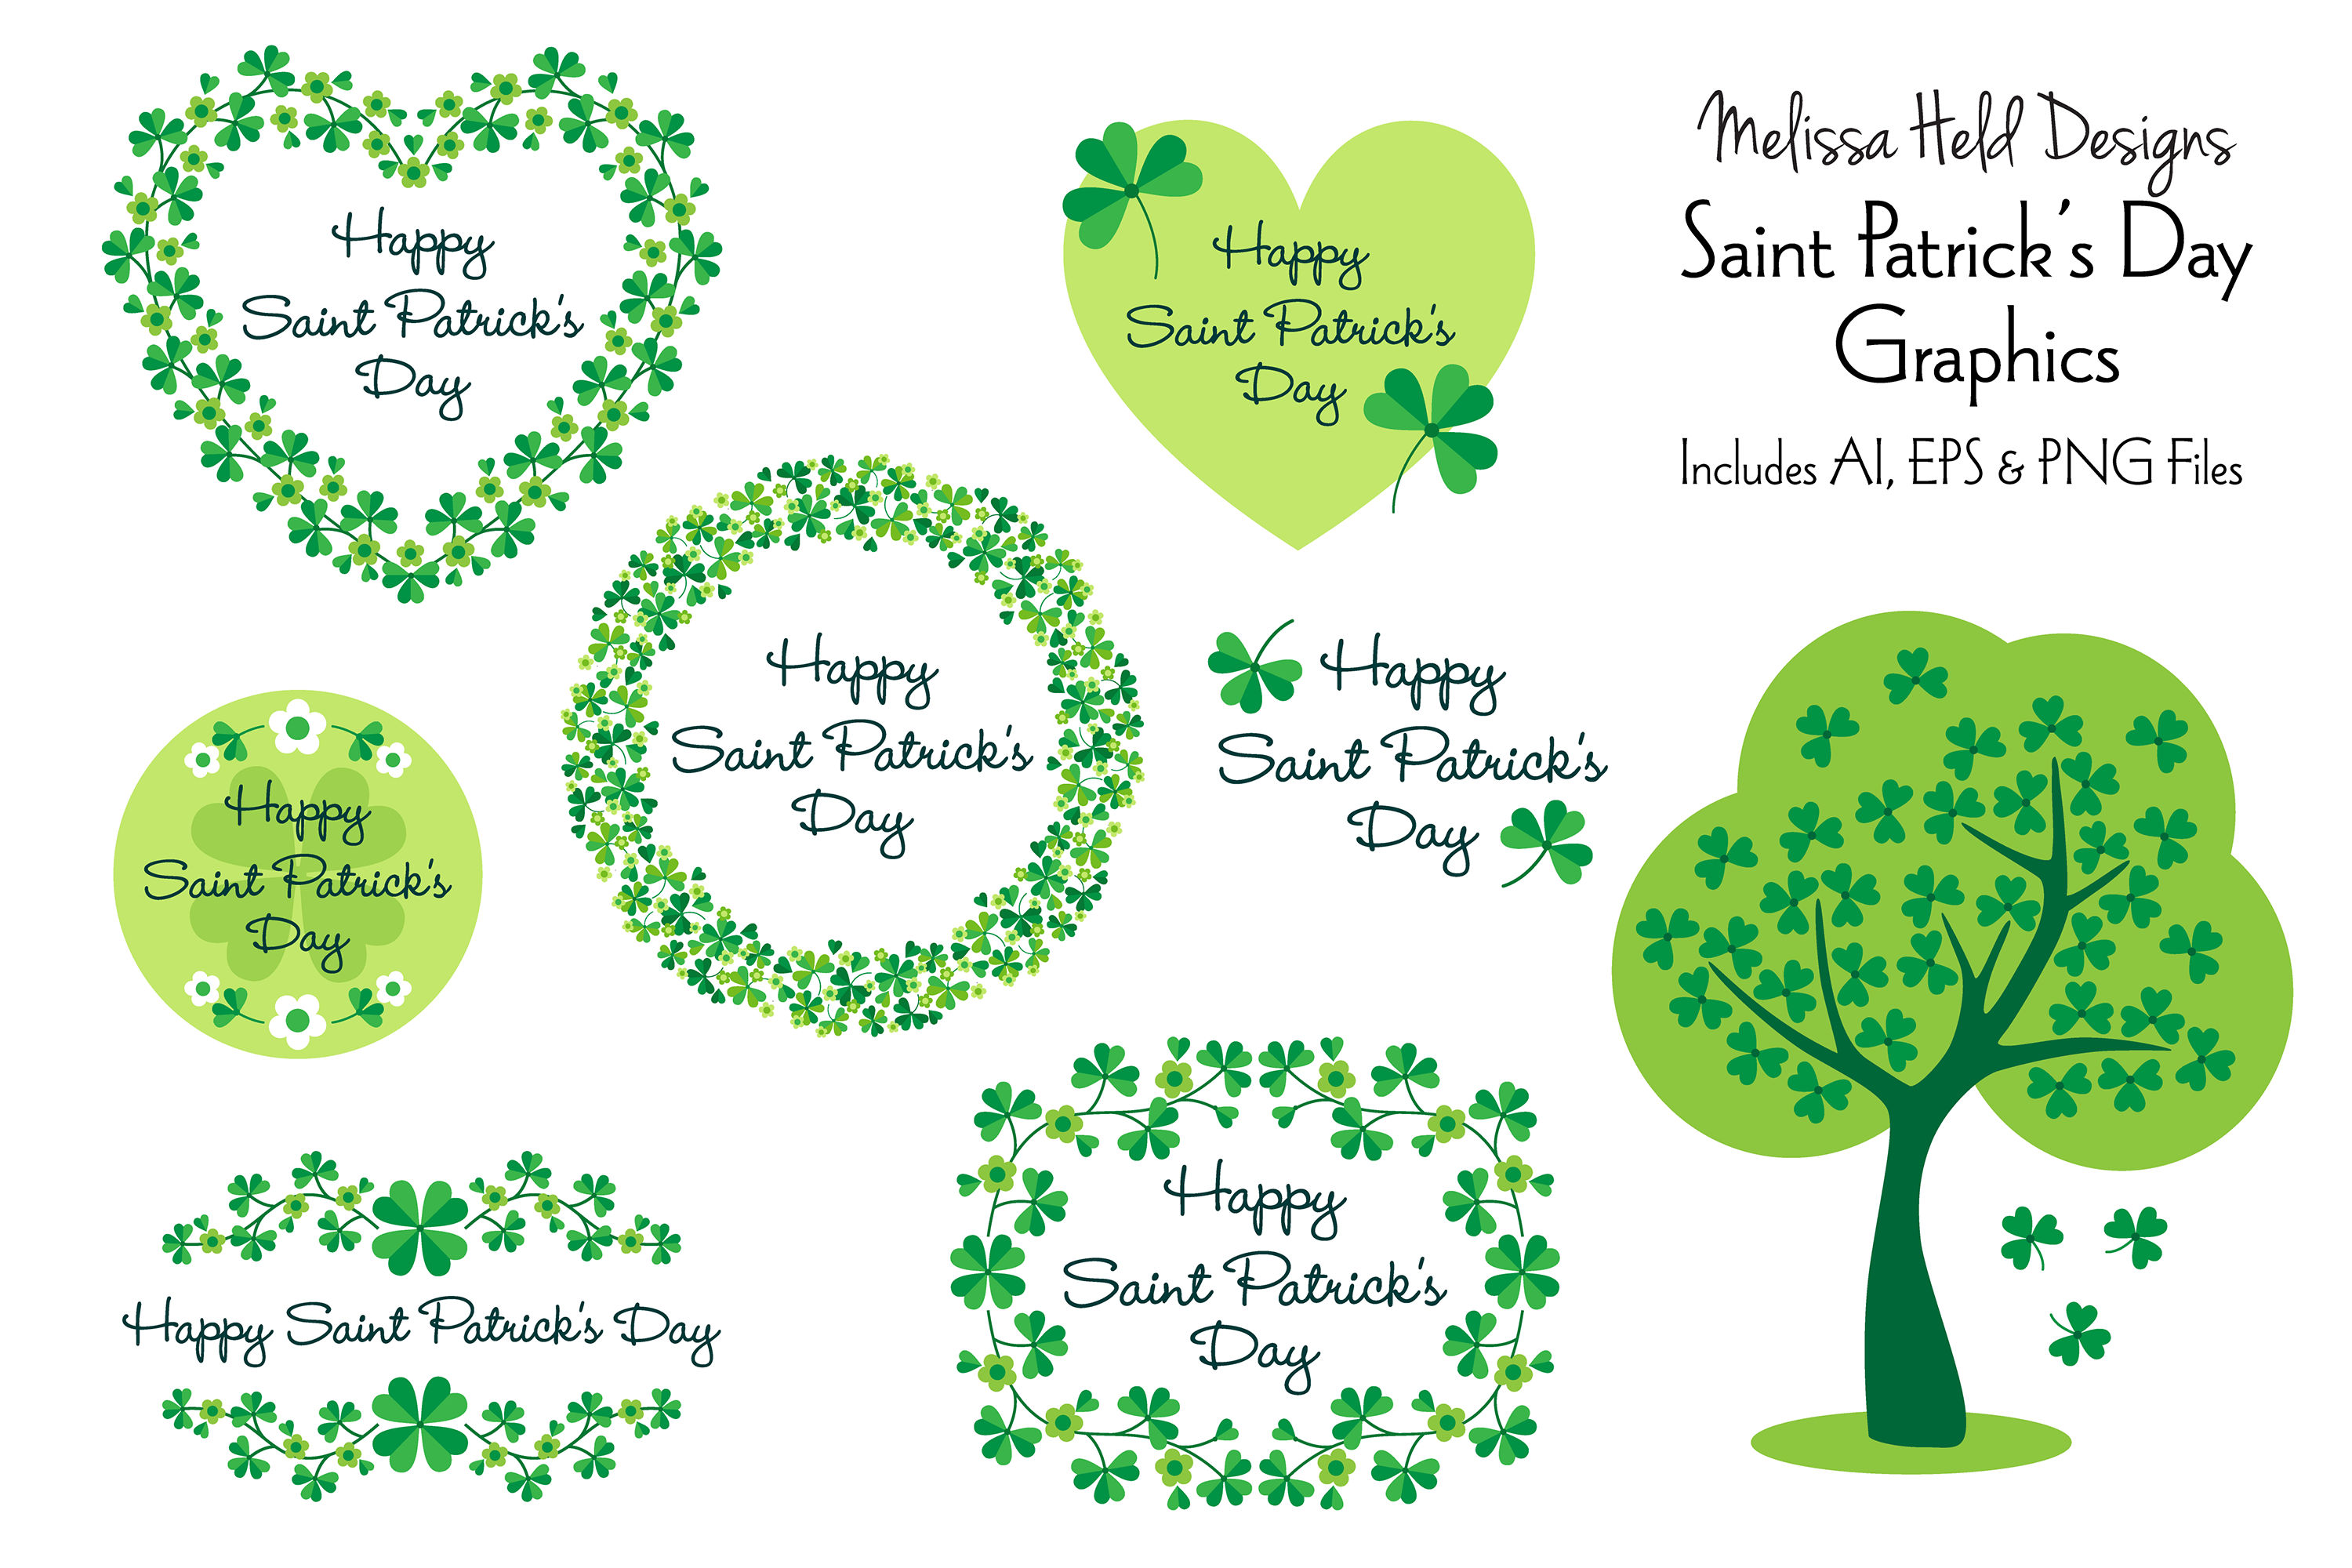 Saint Patrick's Day Graphics example image 1